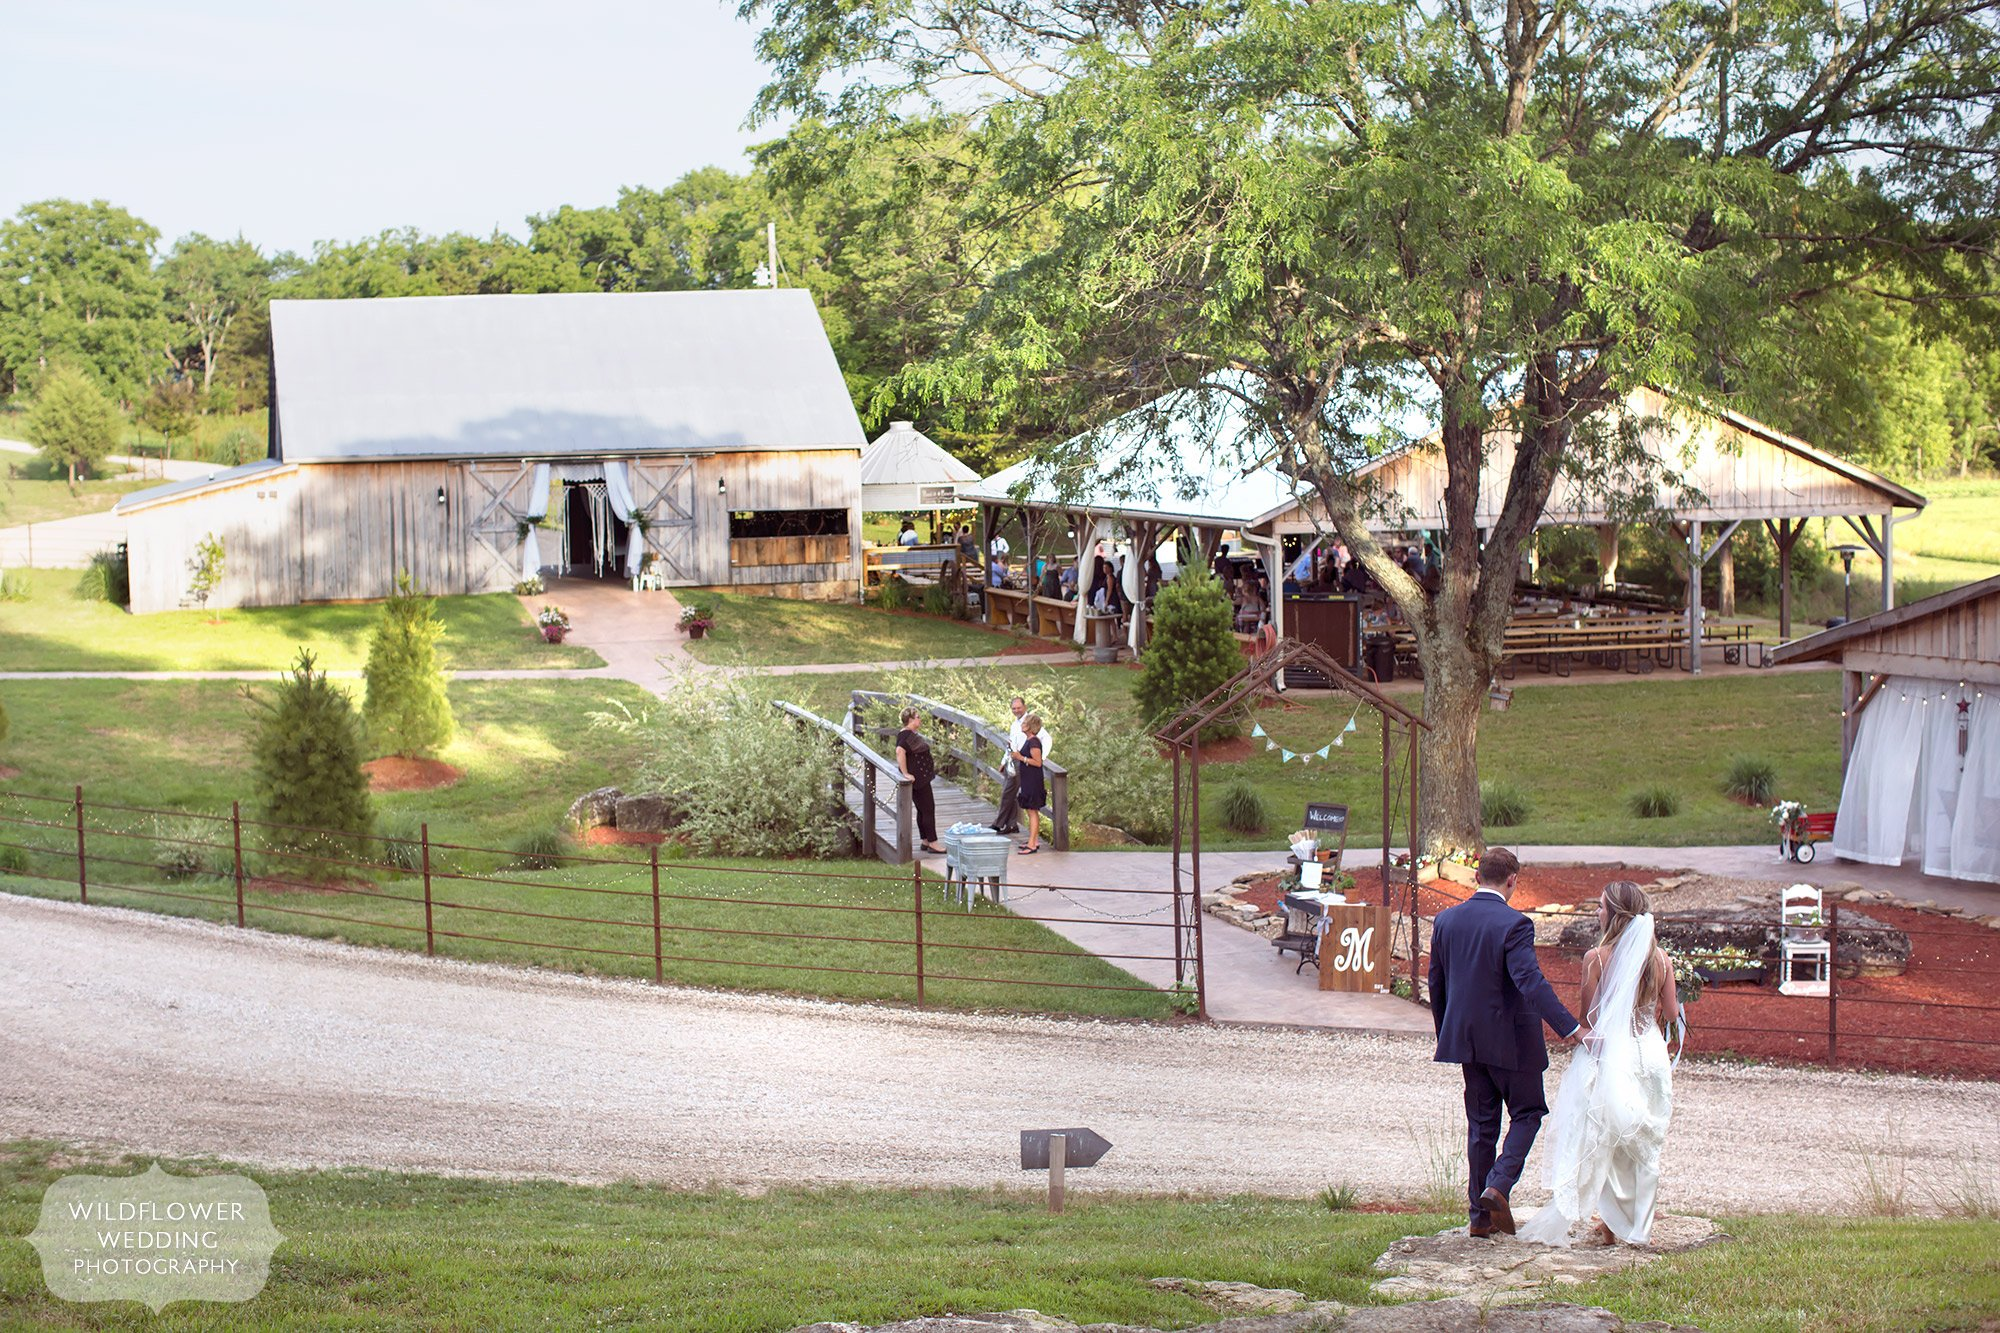 View of the country barn wedding venue with macrame and lace in southern MO.